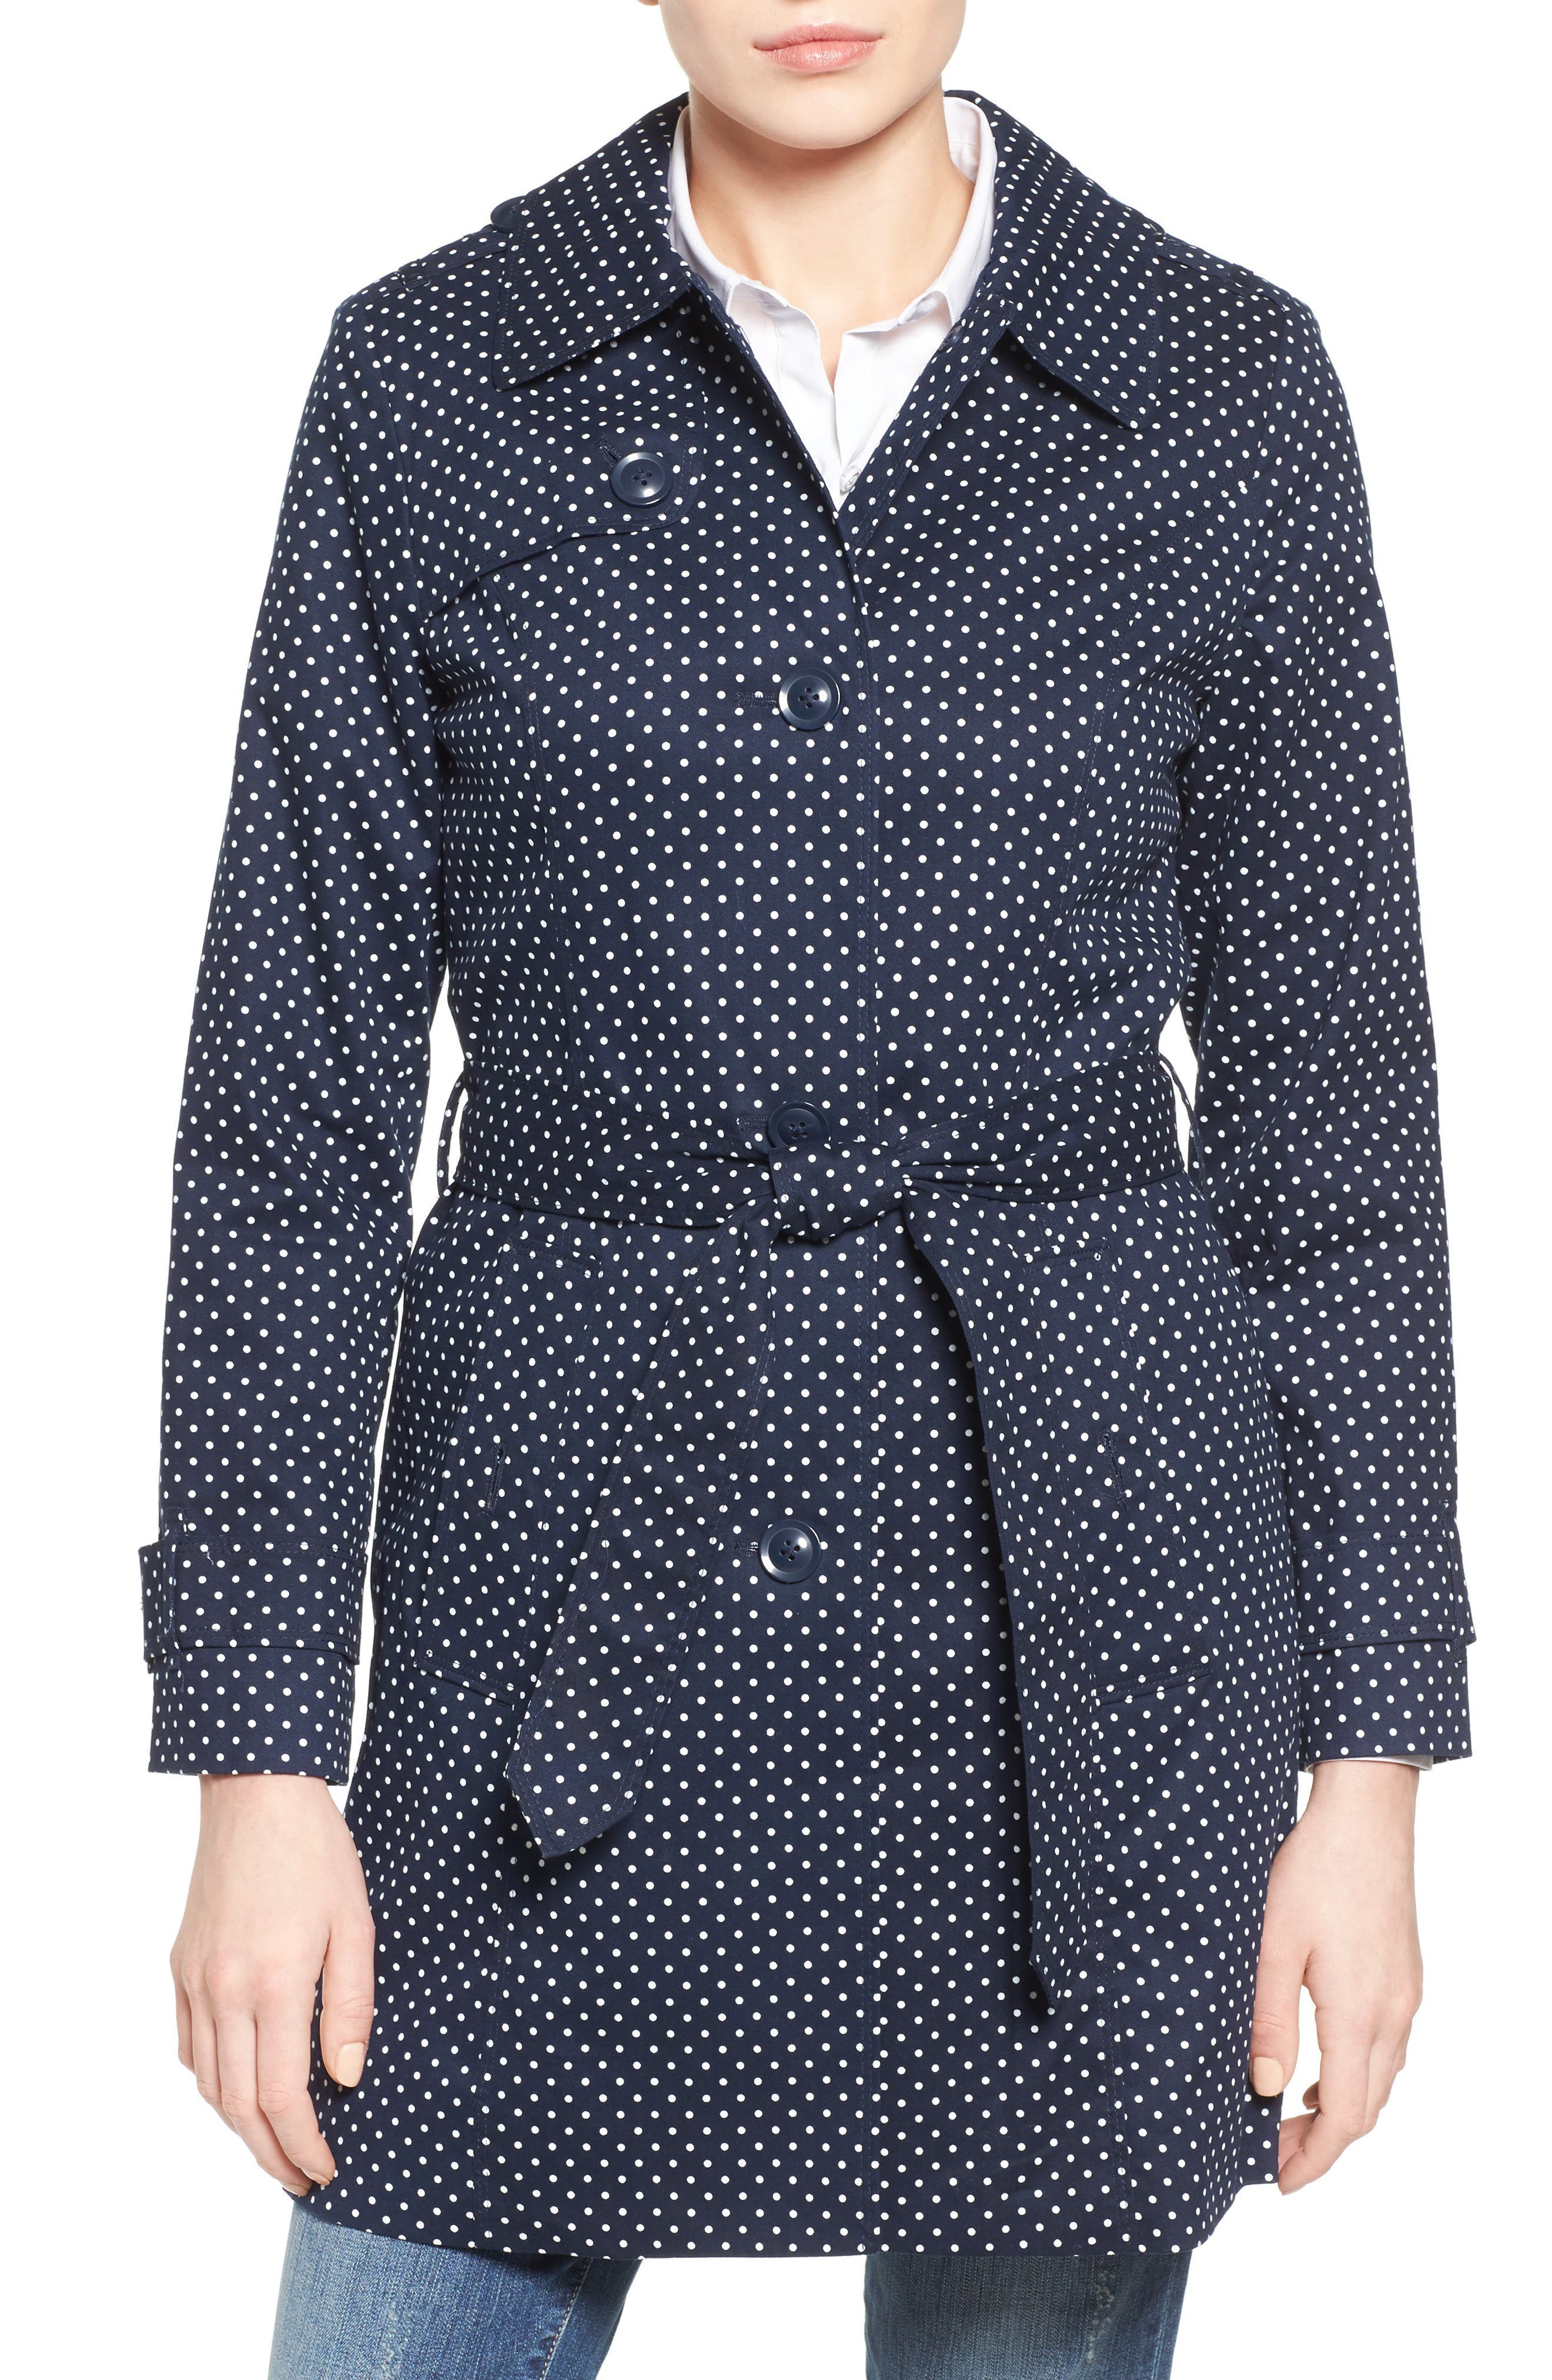 London Fog Polka Dot Single Breasted Trench Coat (Regular & Petite)